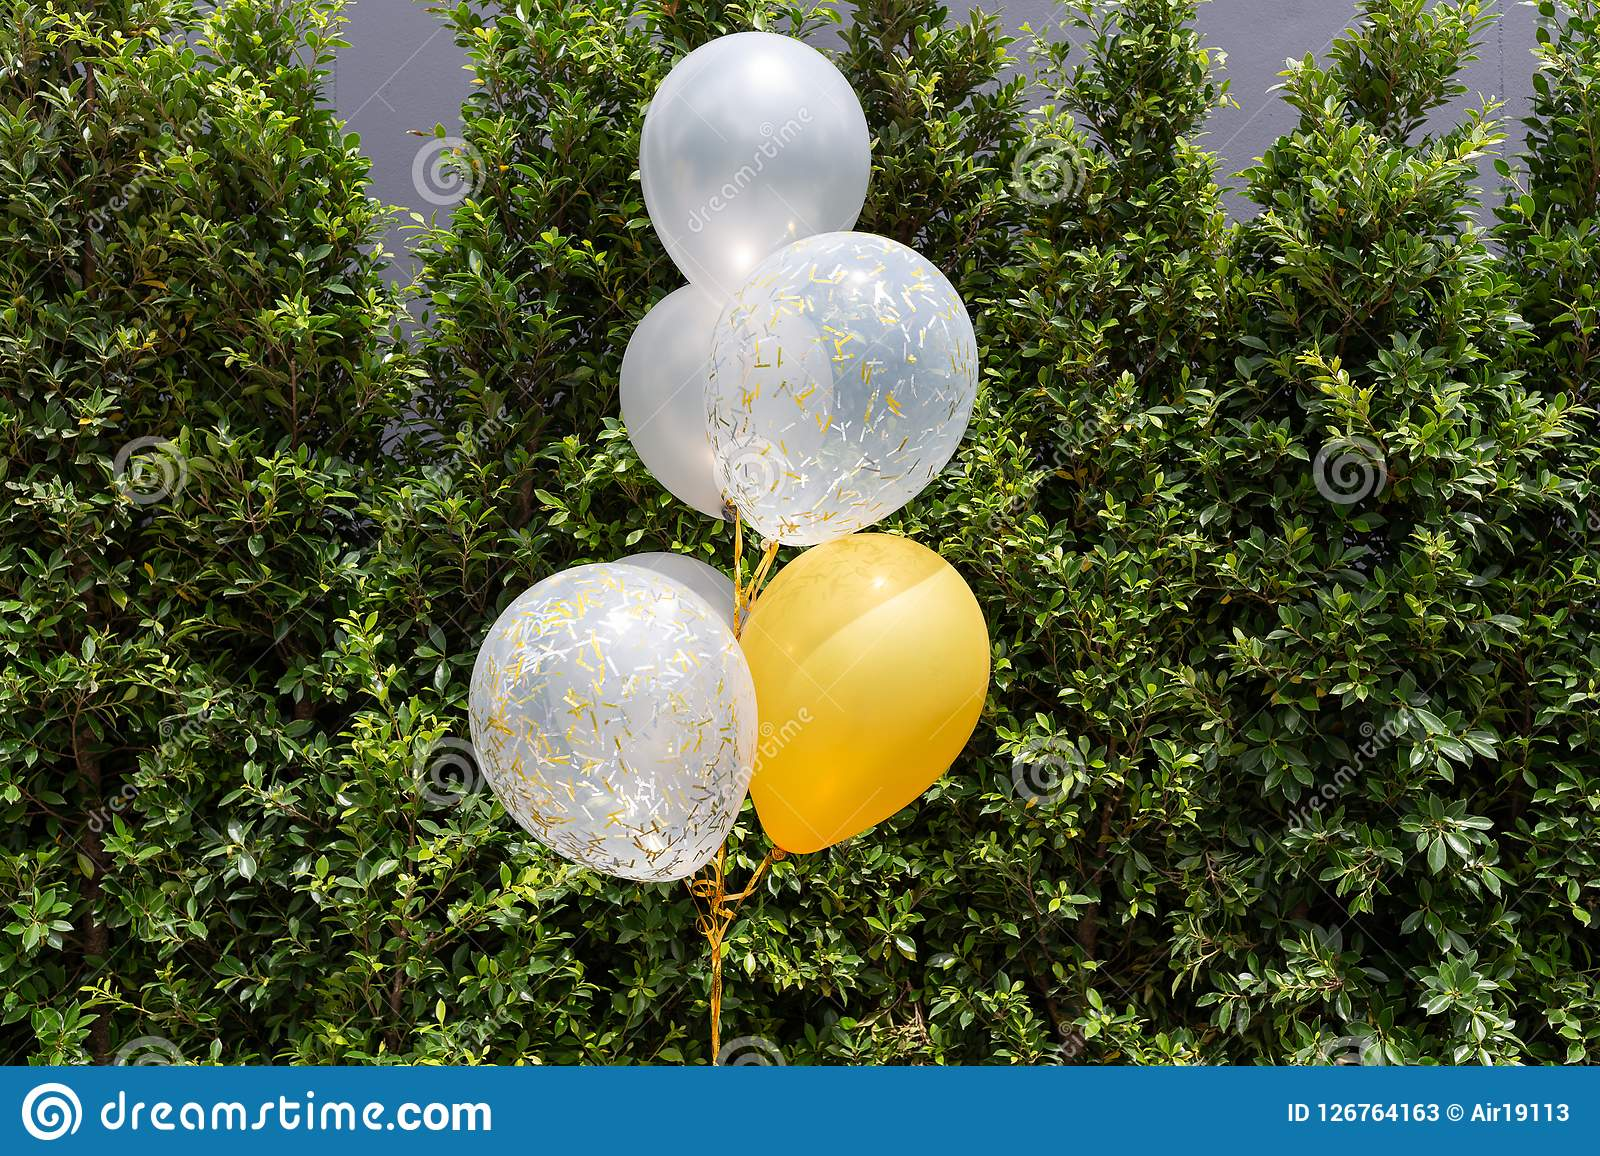 White and yellow balloons in party with tree background. White and yellow balloons with tree background Stock Photos